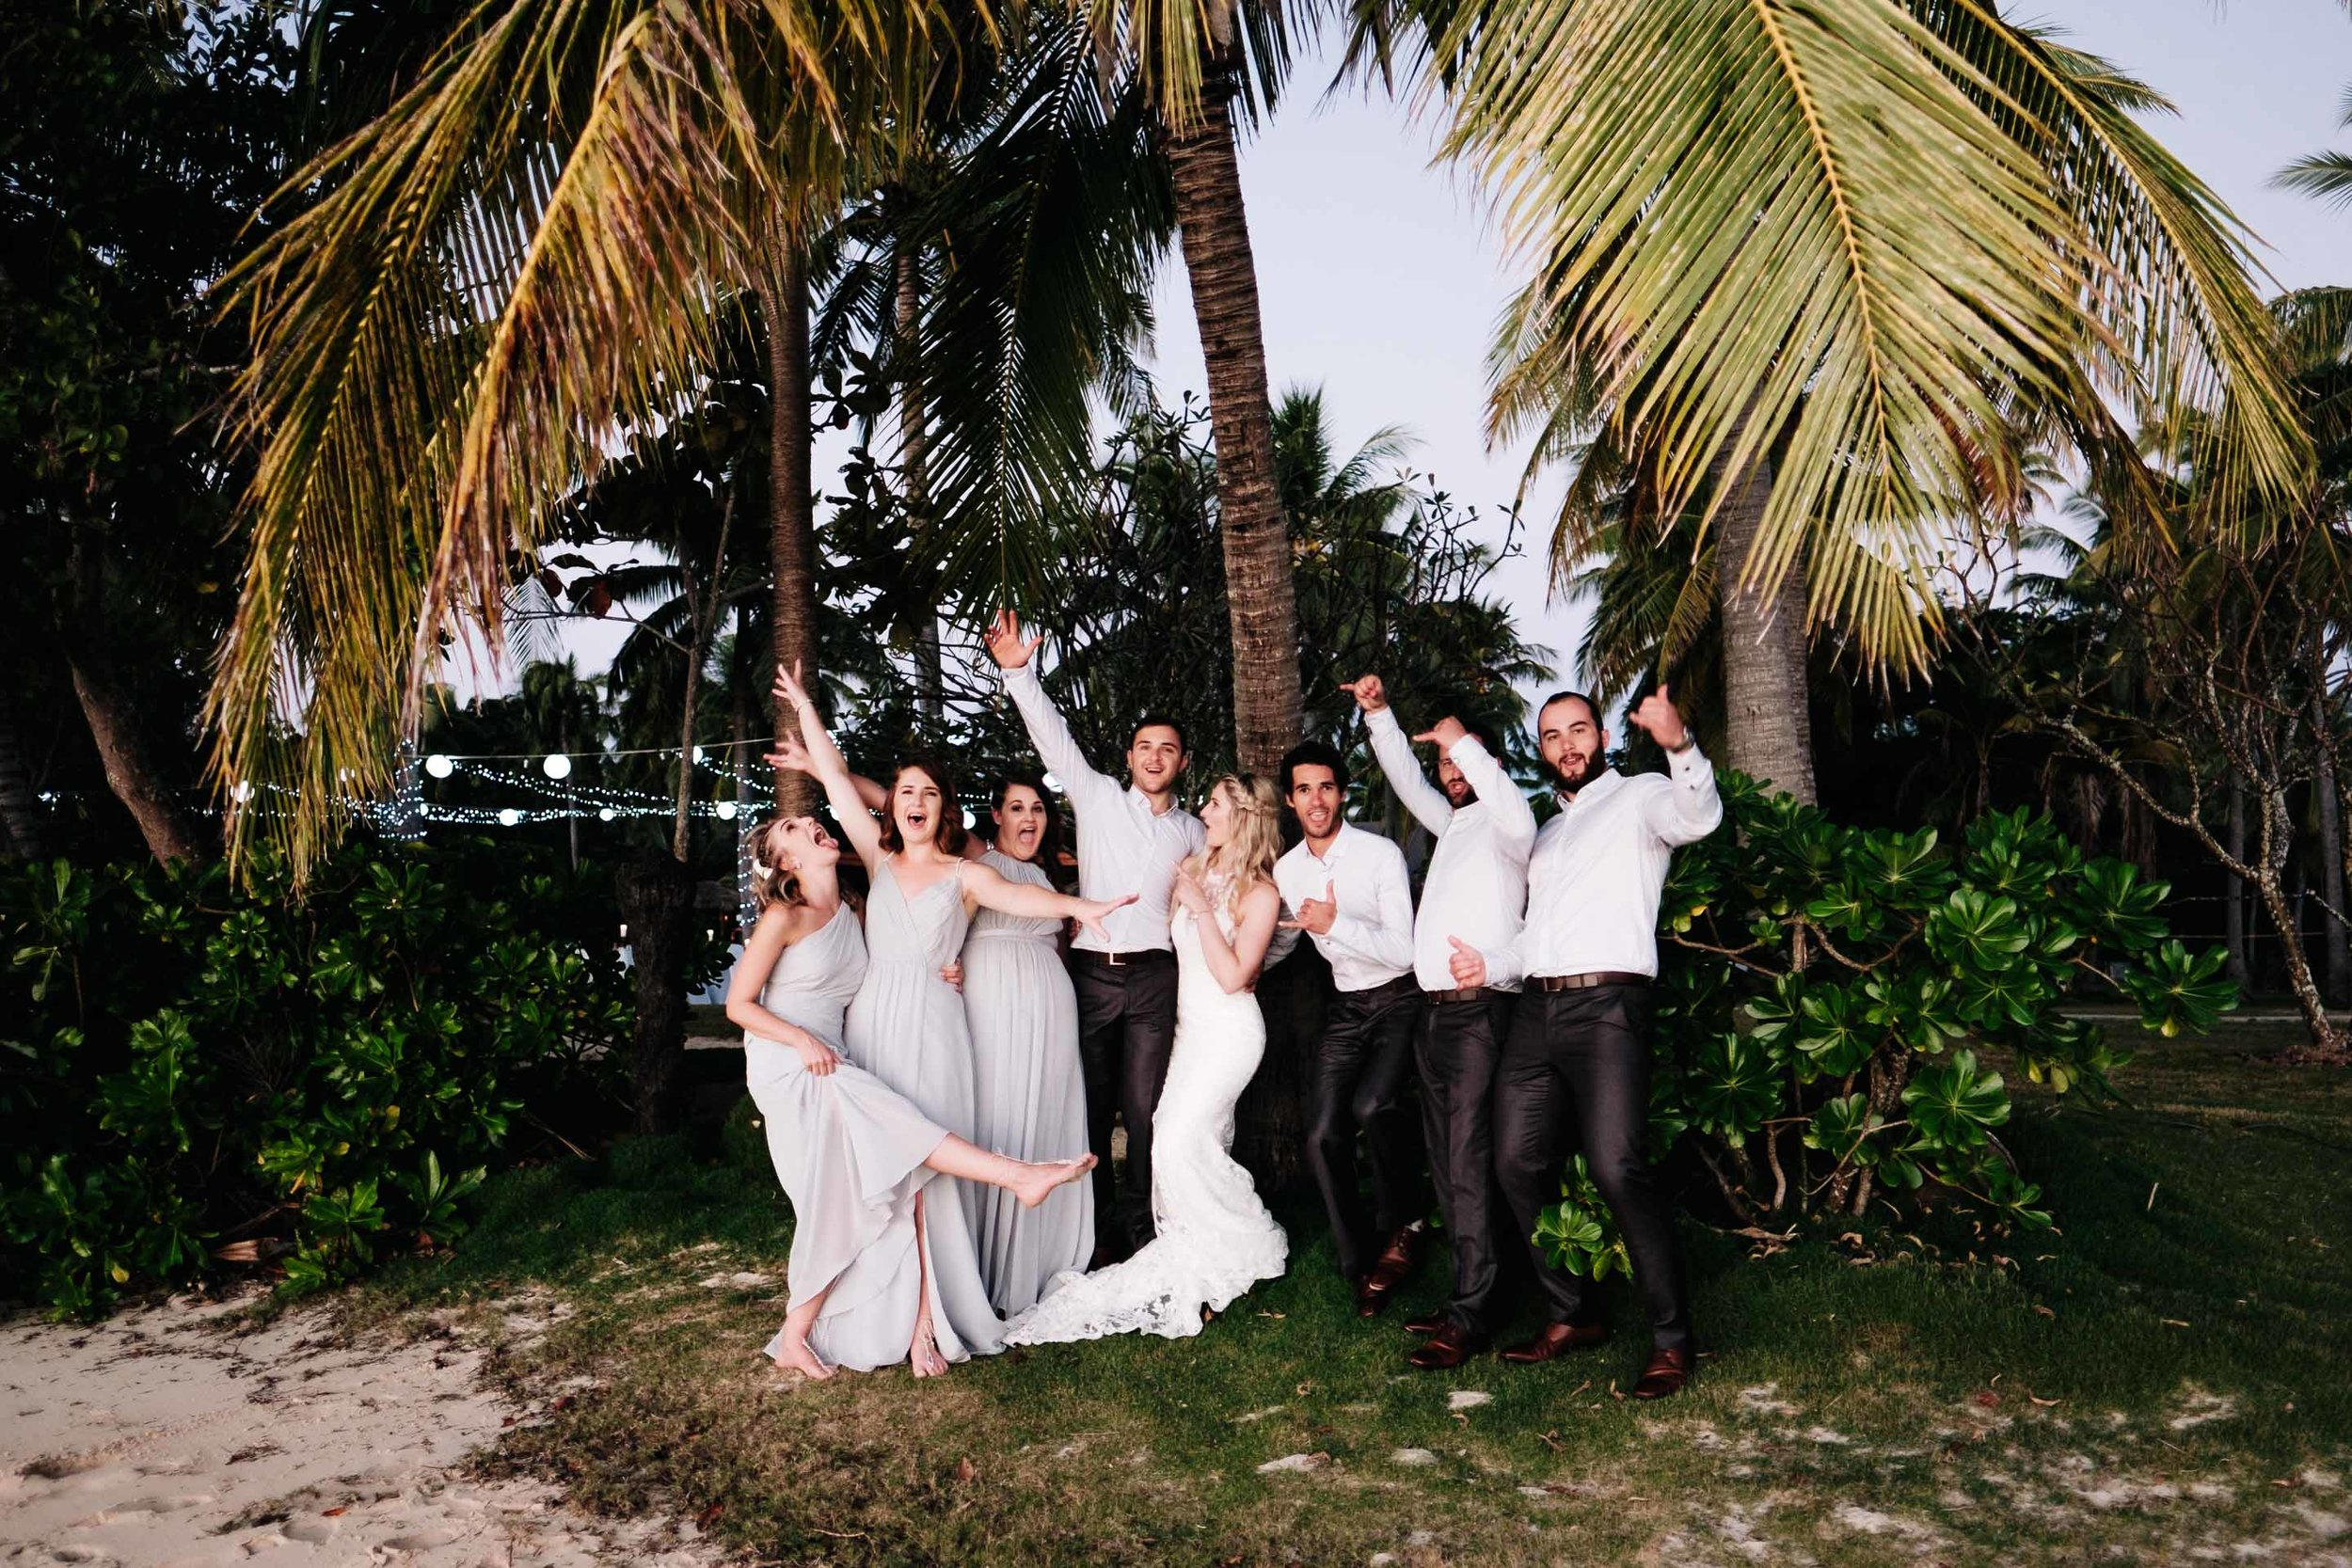 the bridal party having a light moment under a coconut tree next to the beach